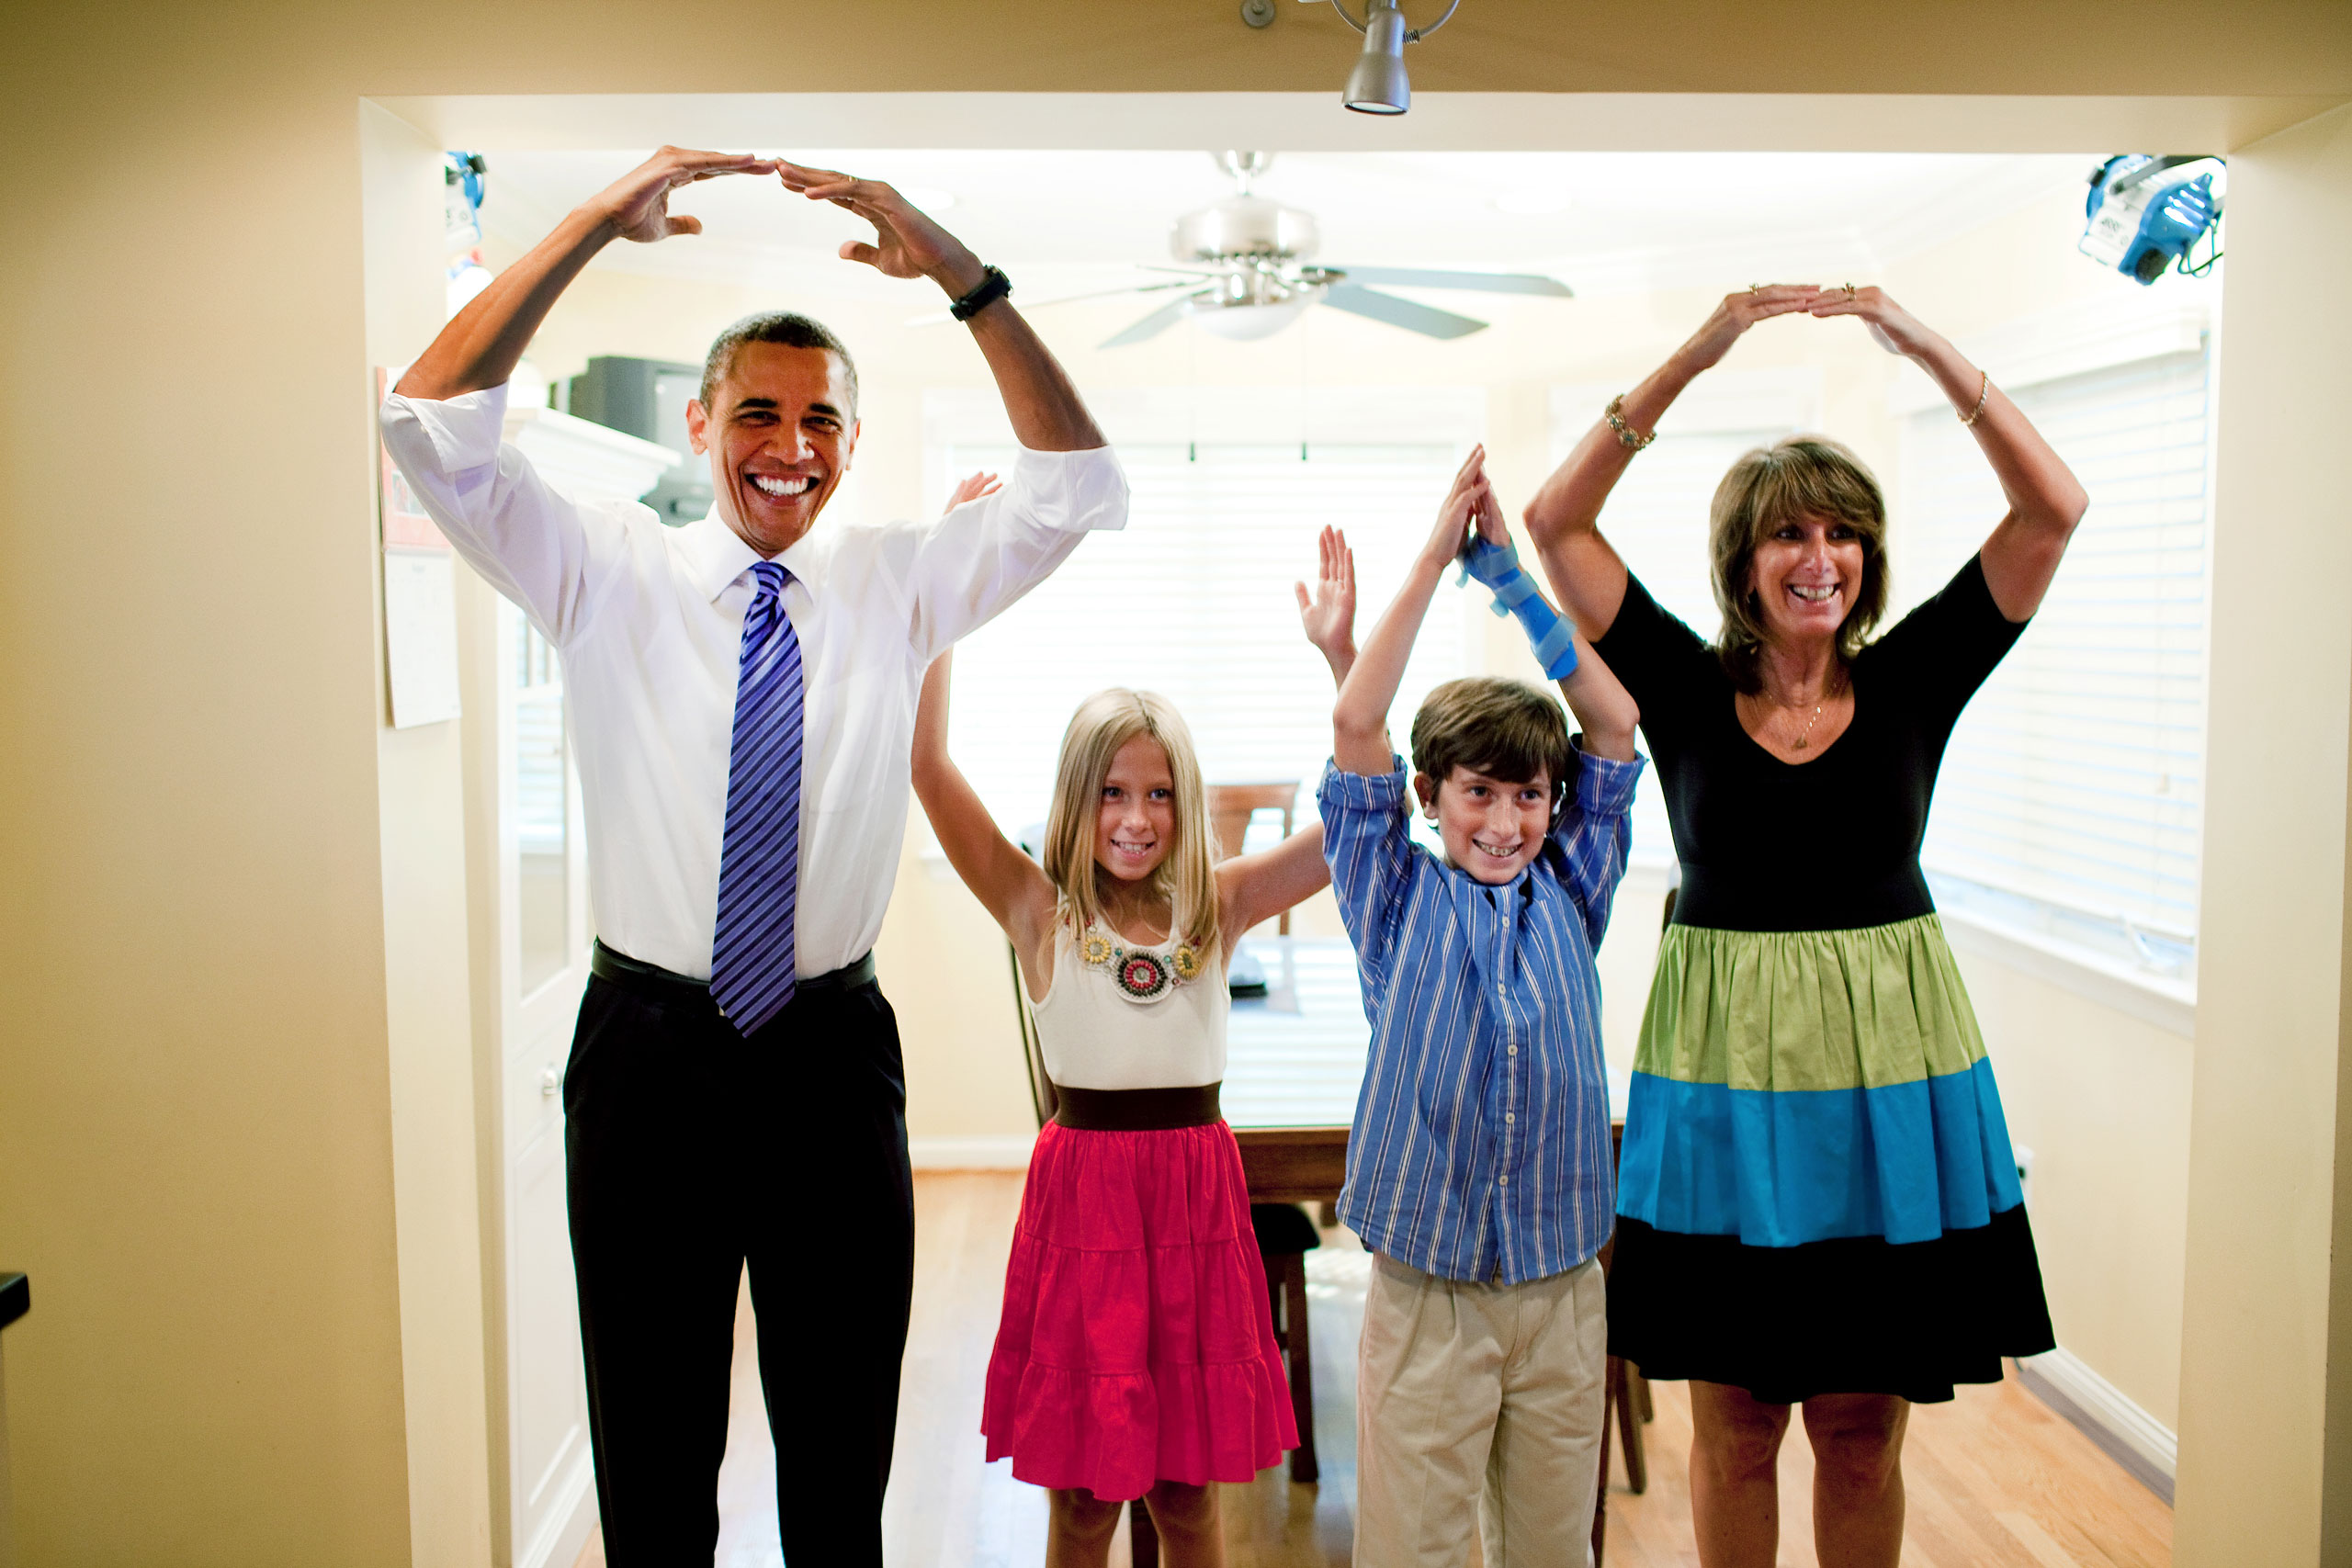 President Barack Obama helps spell out  Ohio  with the Weithman family, Rachel, 9, Josh, 11, and mom Rhonda, in their home in Columbus, Ohio, Aug. 18, 2010.